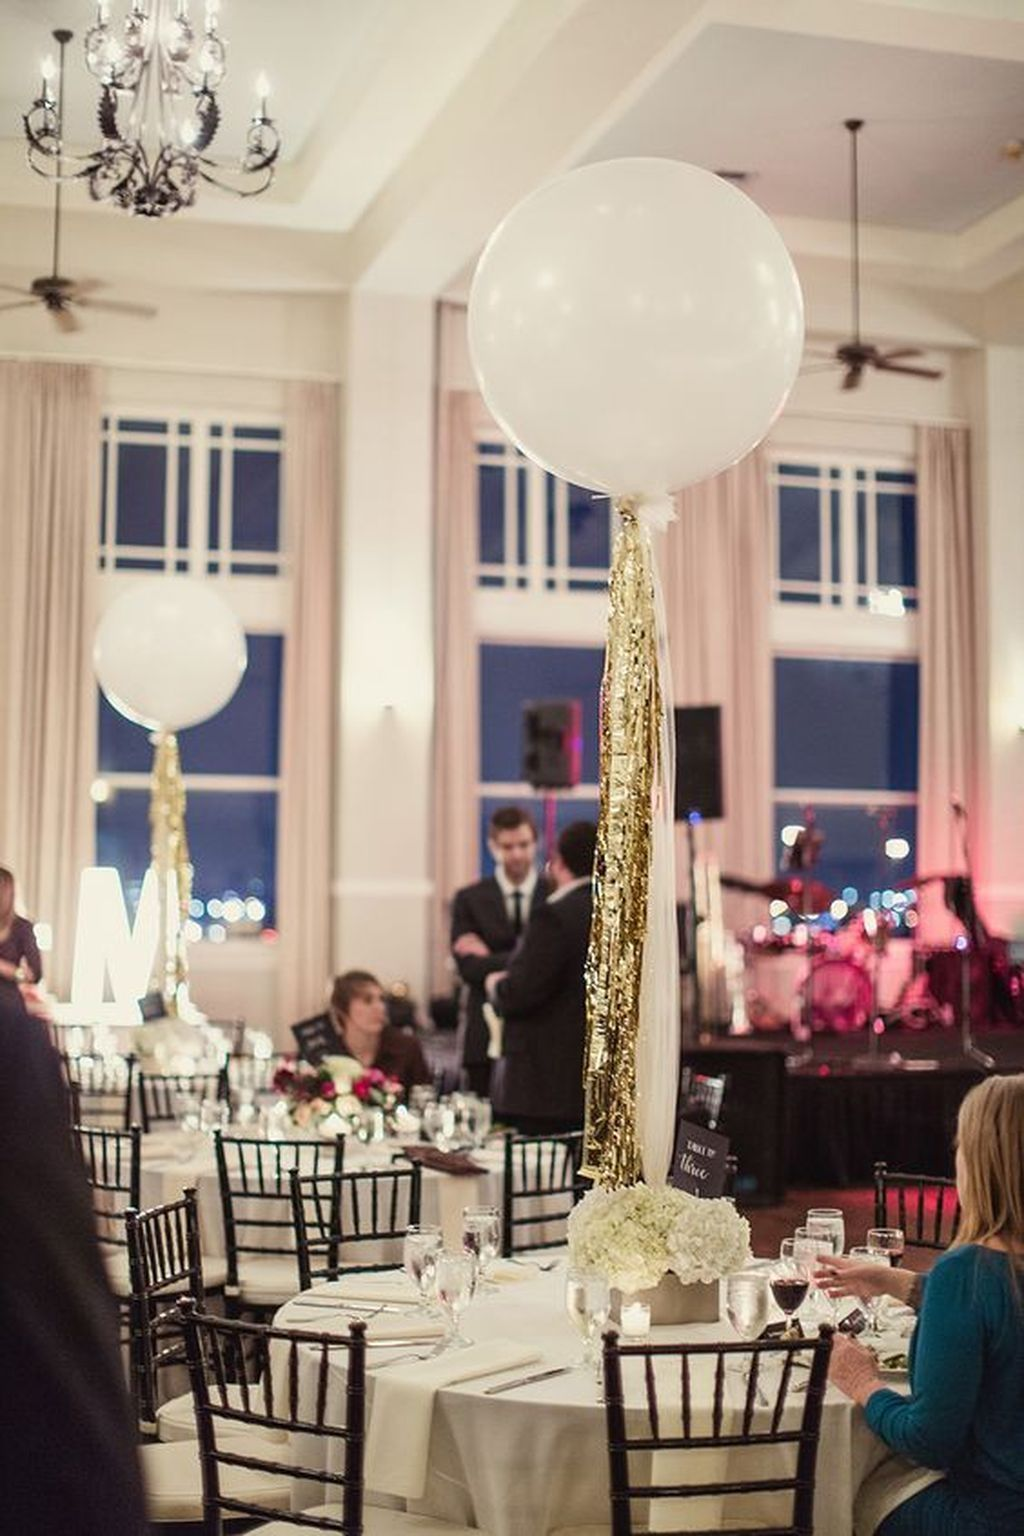 80 Simple And Beautiful Balloon Wedding Centerpieces Decoration